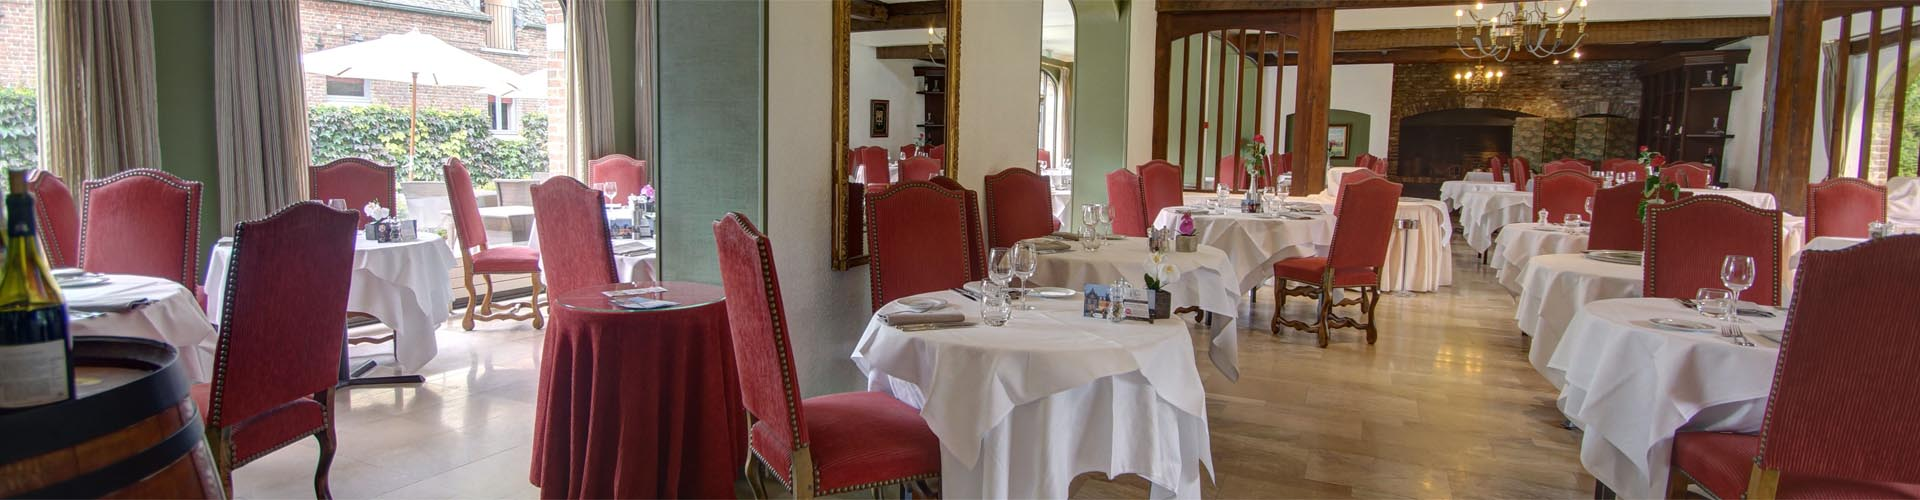 restaurant vertmesnil saint-omer